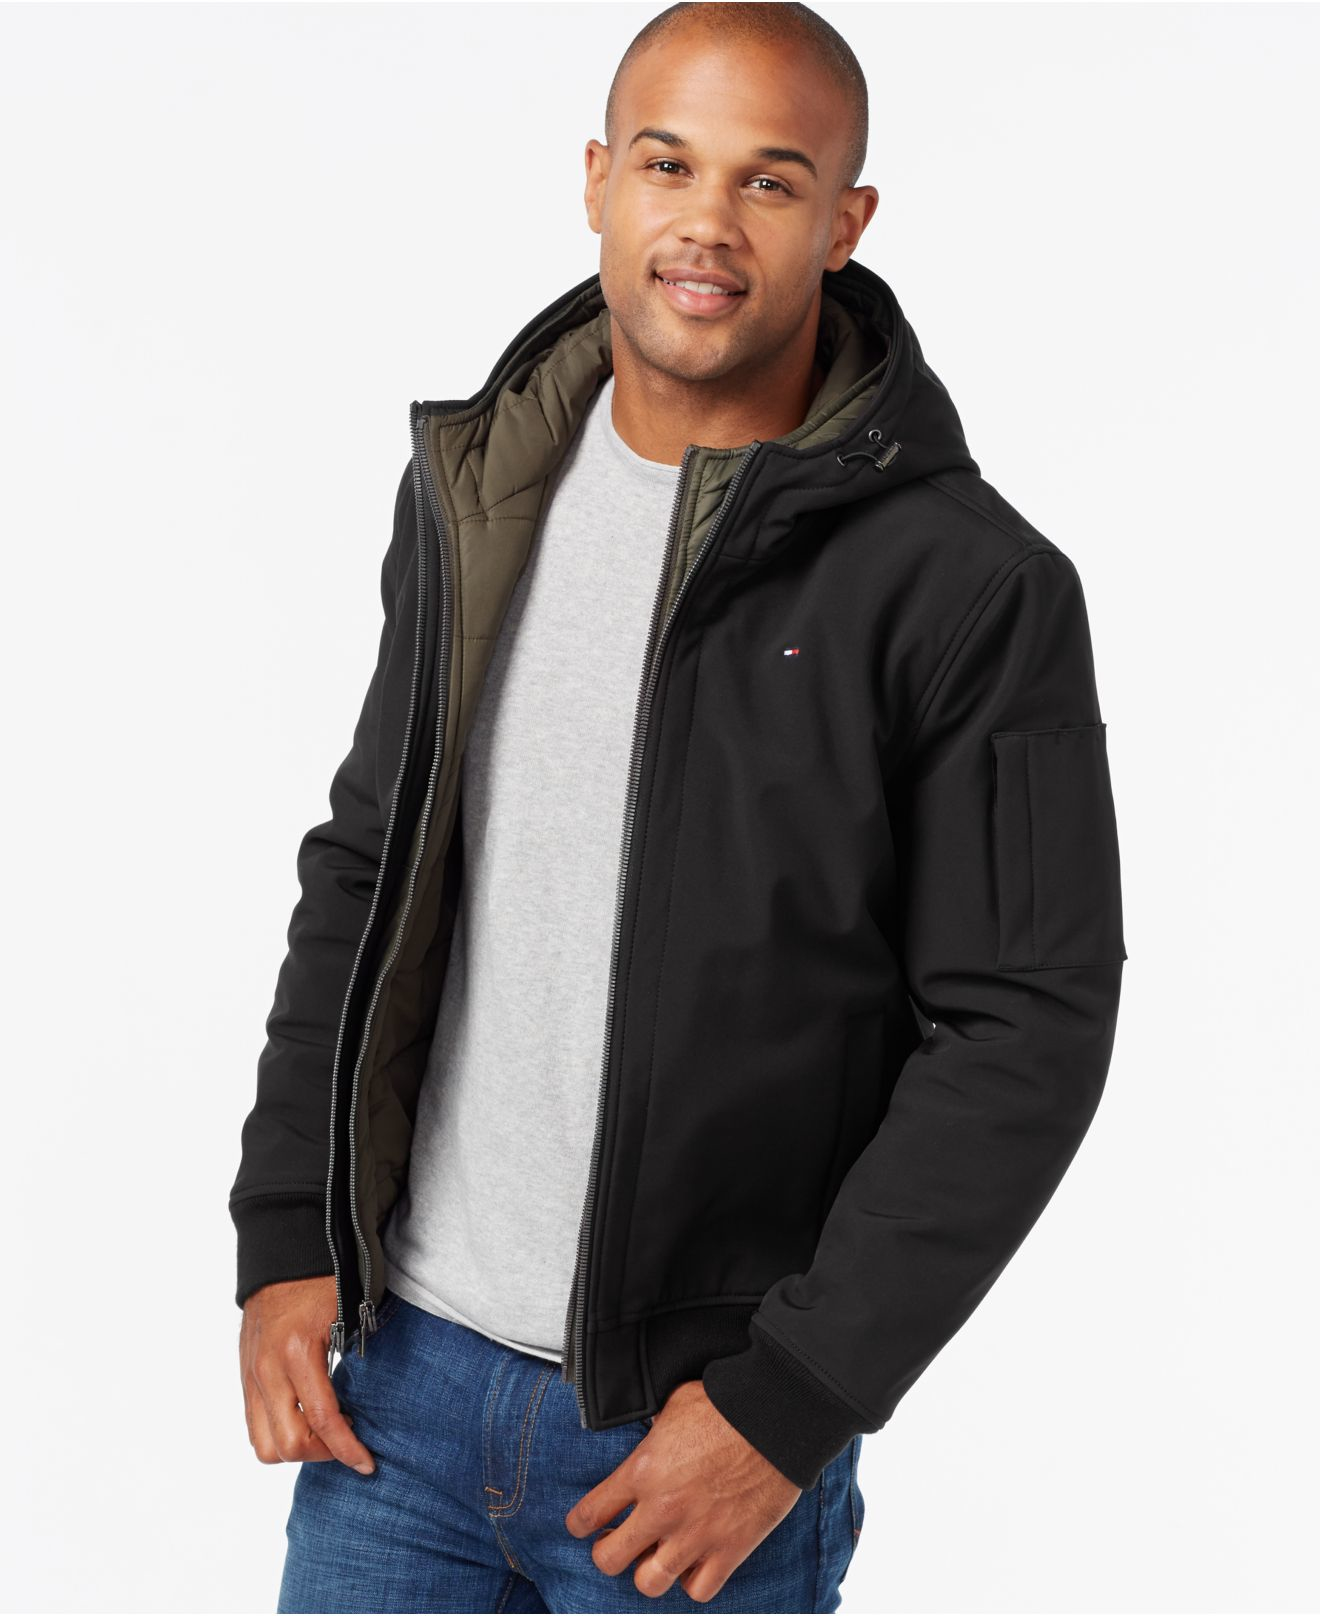 tommy hilfiger soft shell bomber hoodie jacket in black. Black Bedroom Furniture Sets. Home Design Ideas